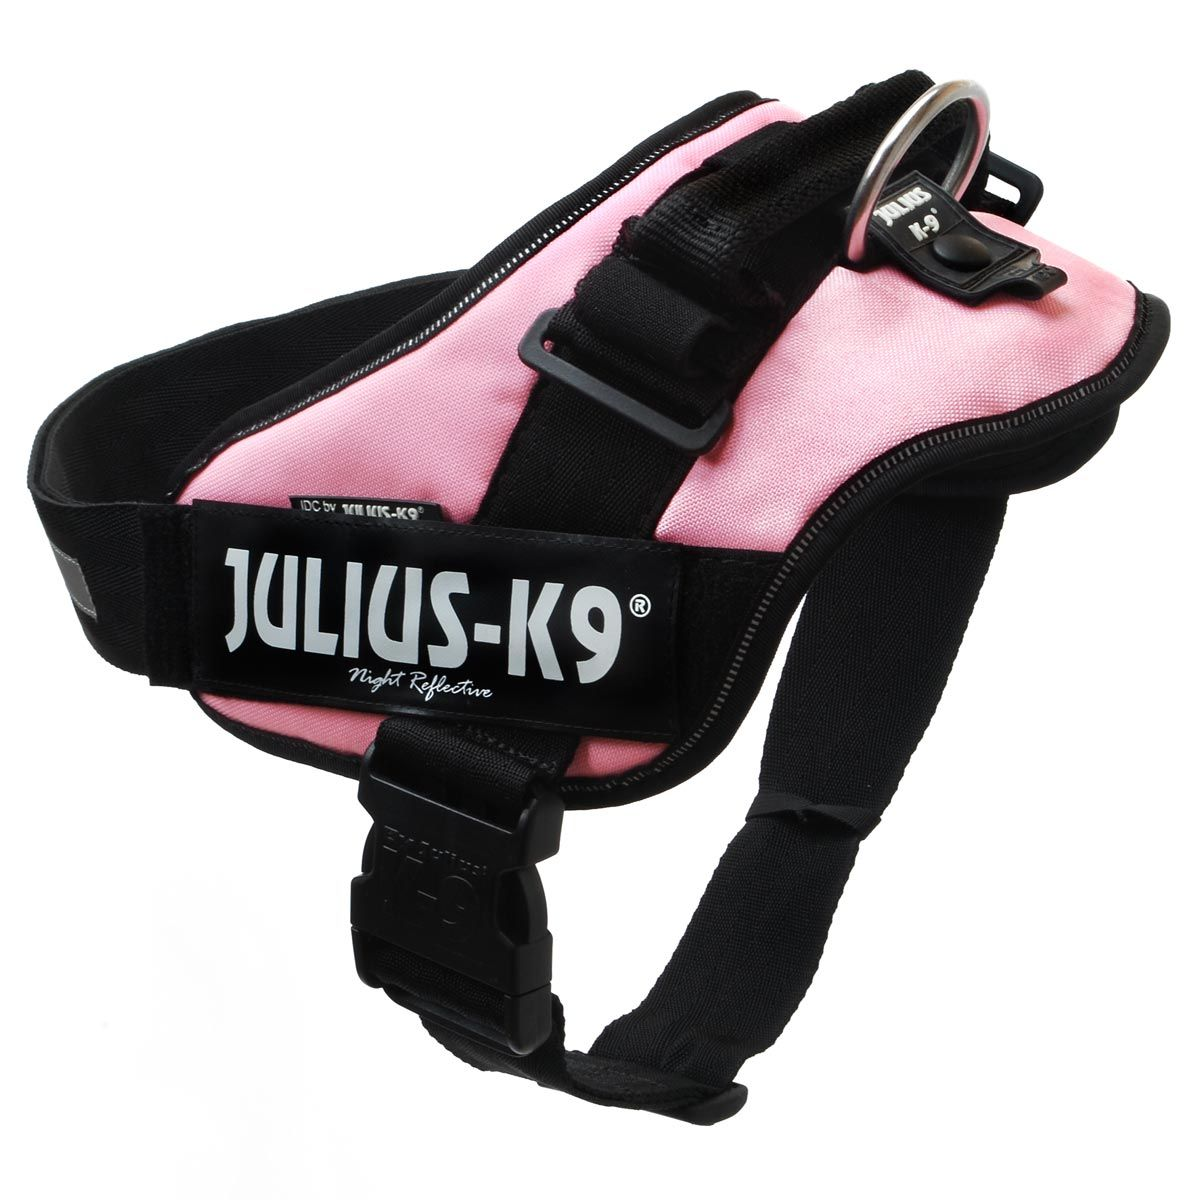 My indestructible harness {Ayla's Thoughts}